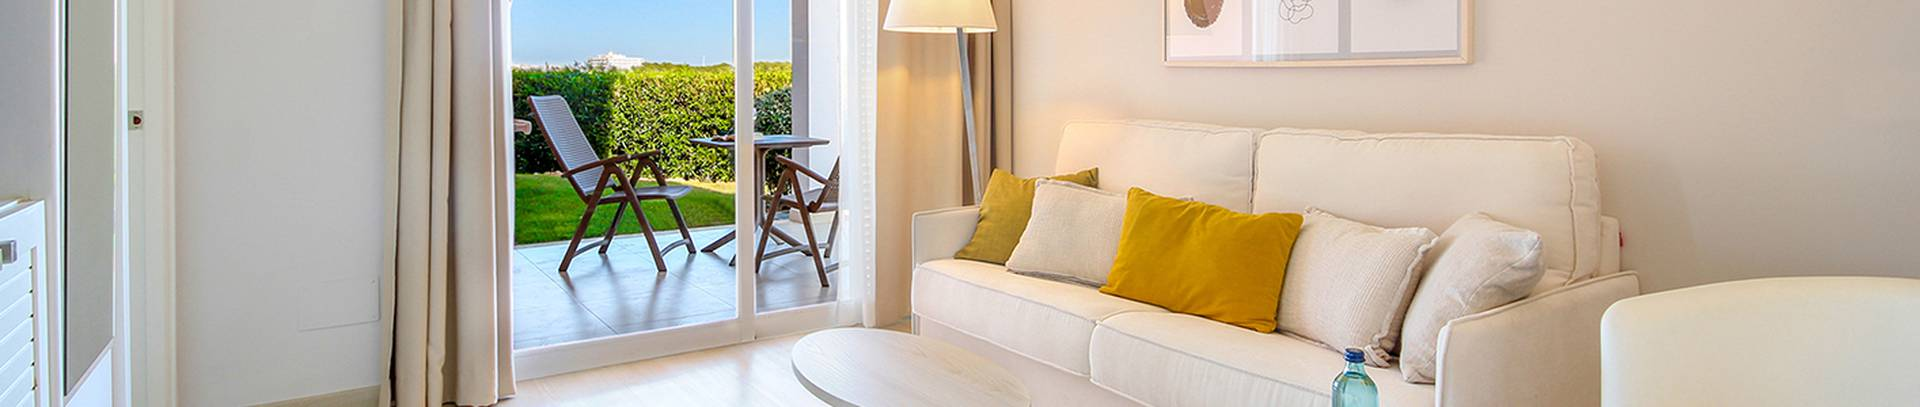 Blau hotels & resorts - Majorca -